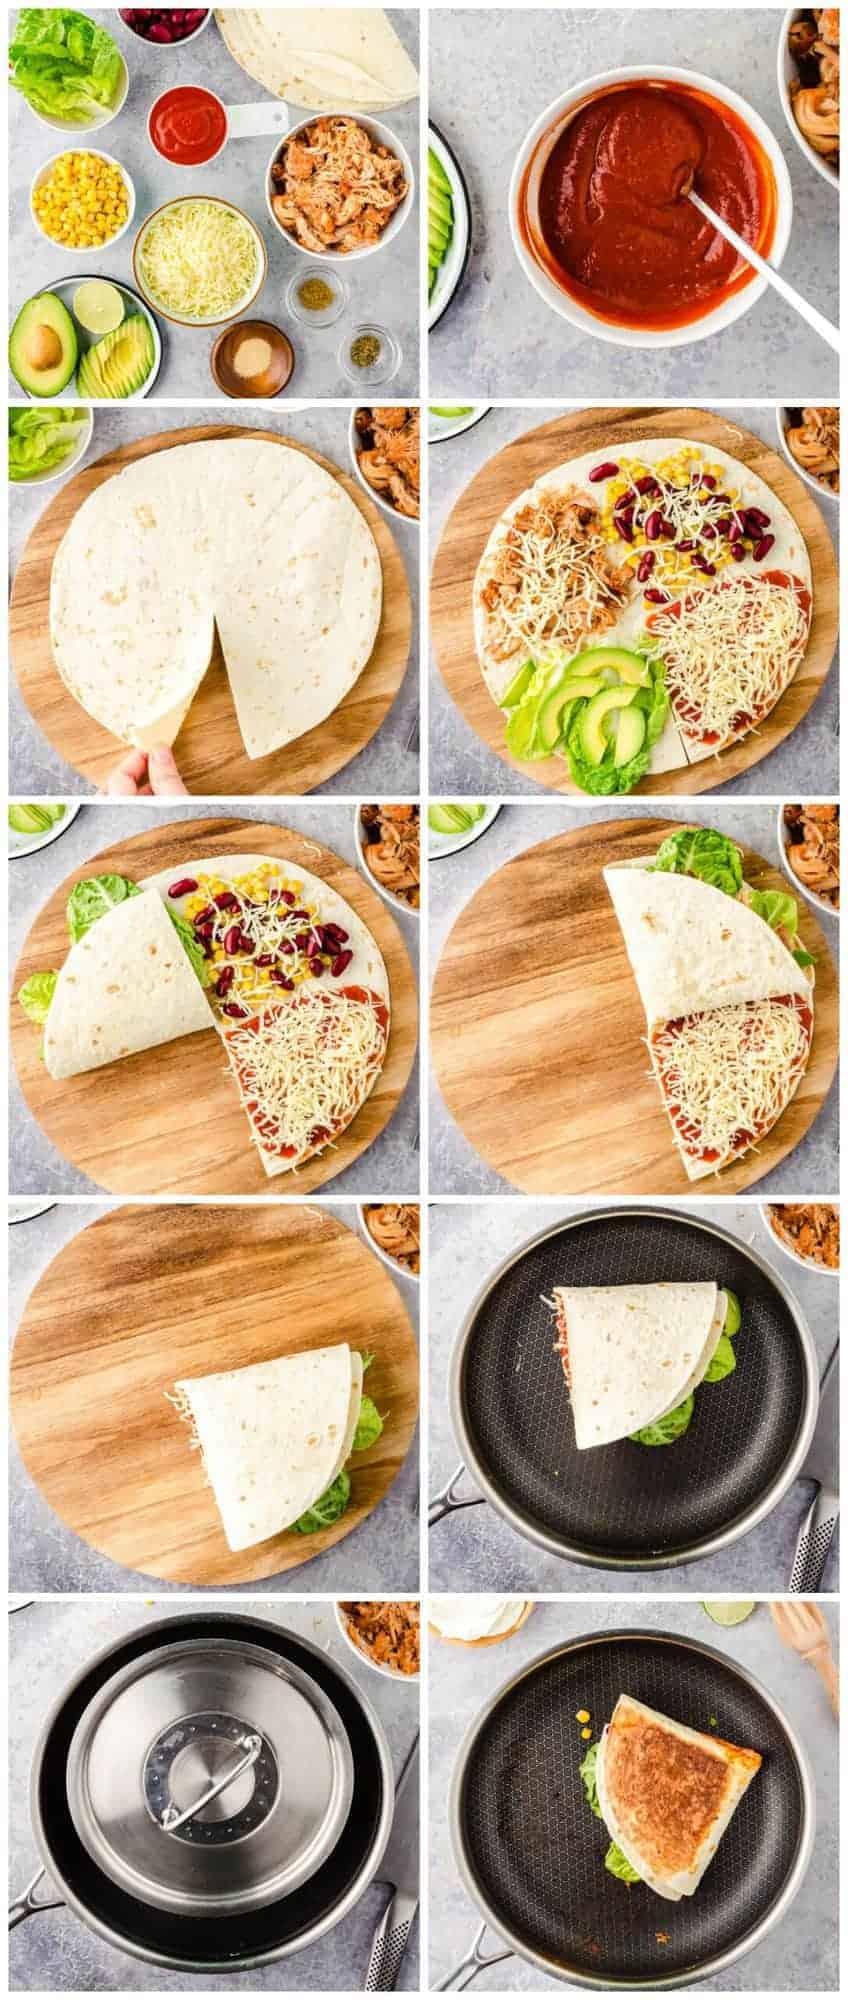 step by step photos for how to make foldover quesadillas